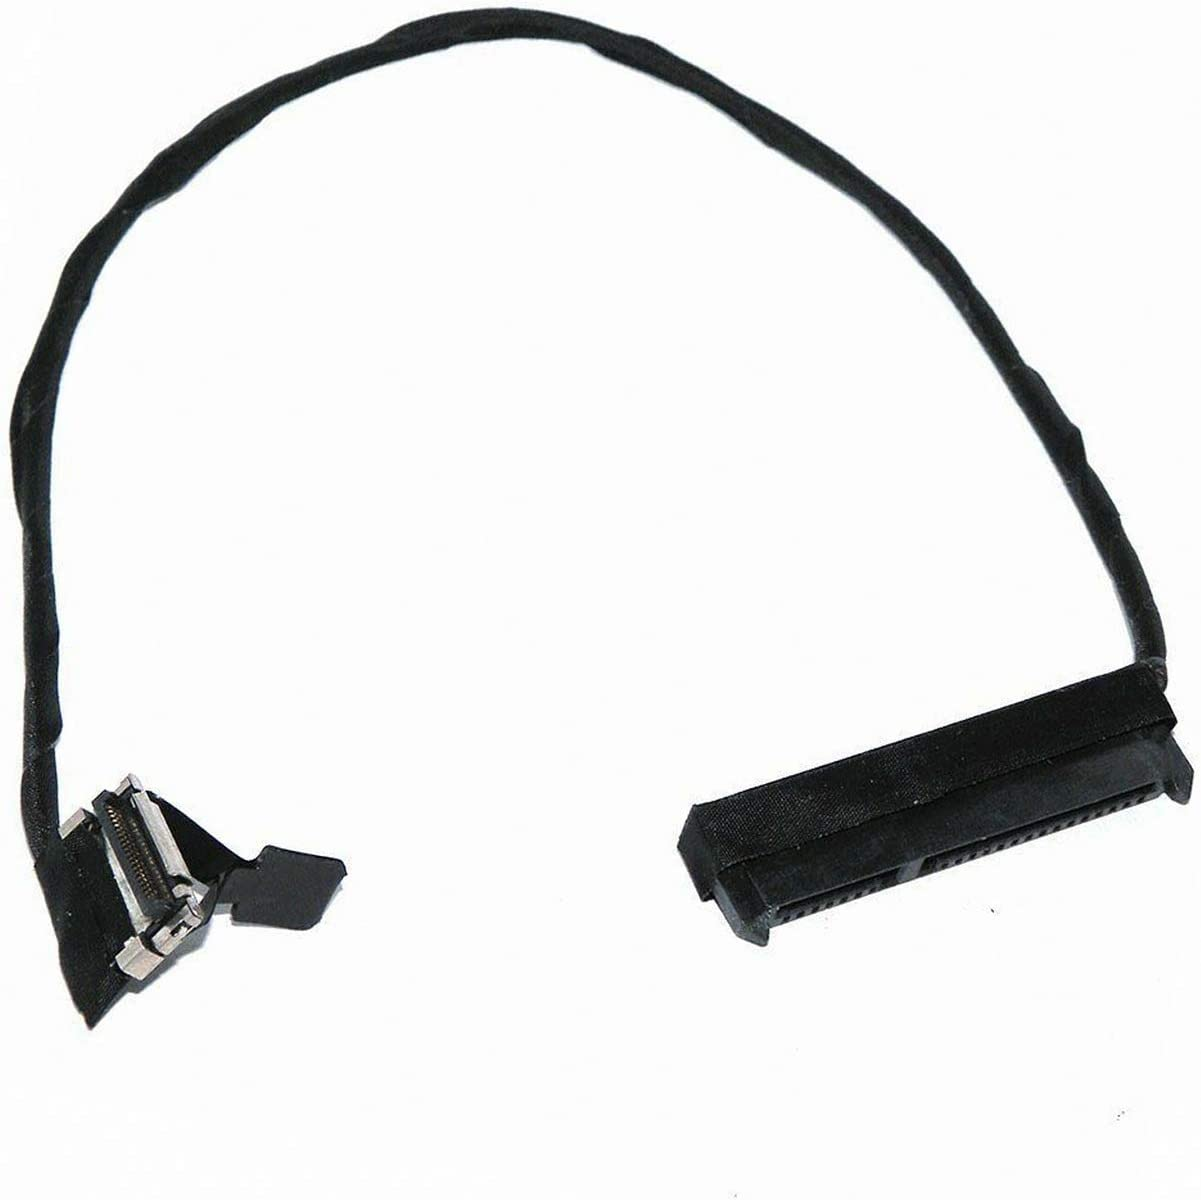 2nd Hard Drive Connector Adapter HDD Cable for HP DV6-6000